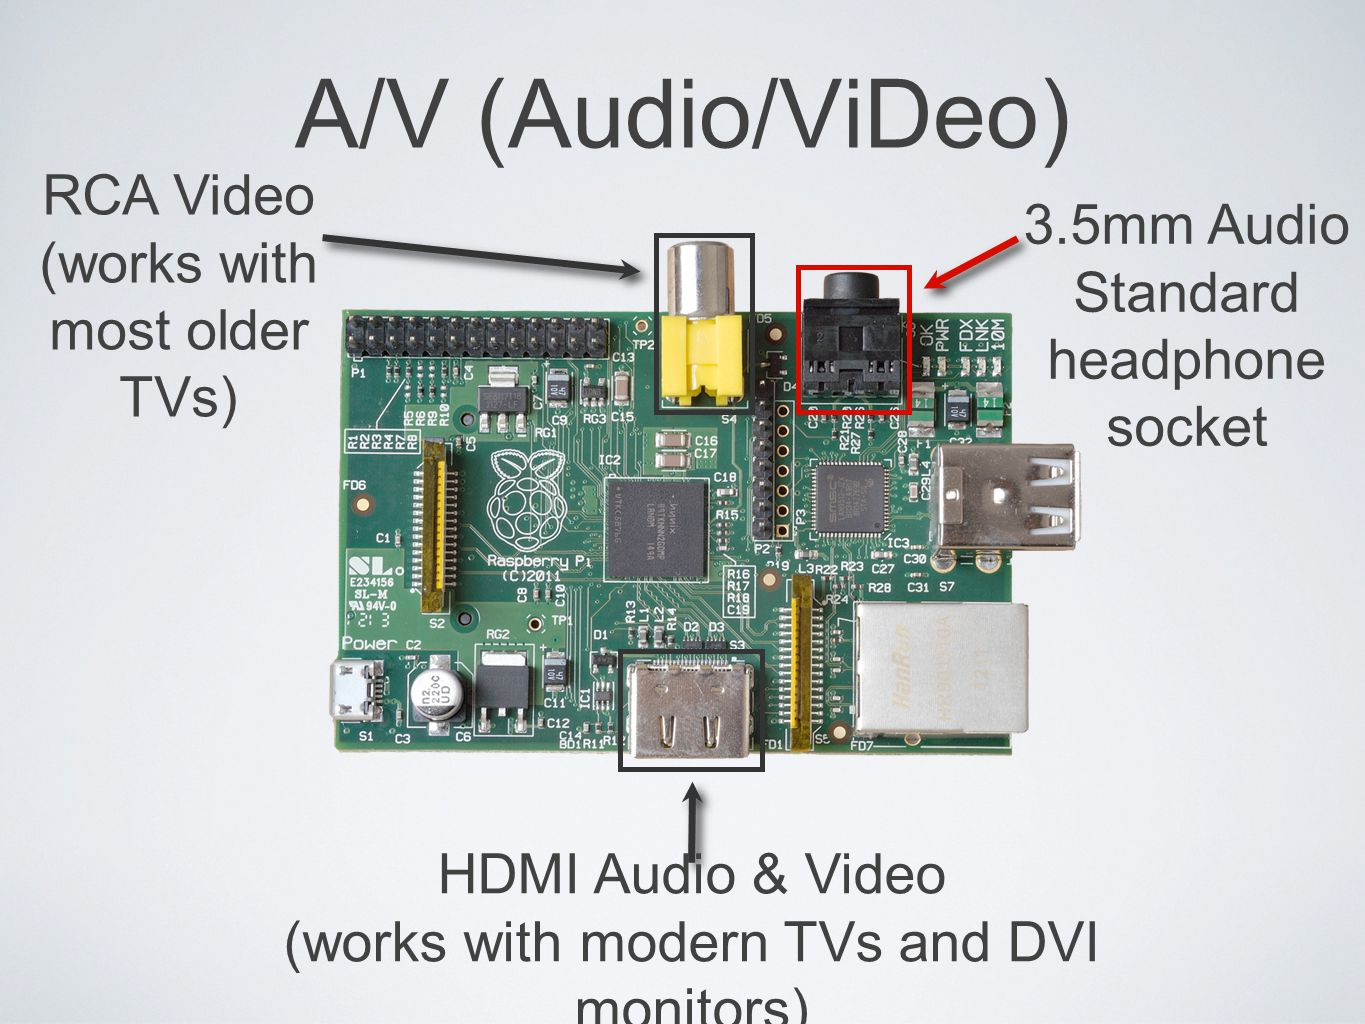 A/V (Audio/ViDeo) RCA Video (works with most older TVs) HDMI Audio & Video (works with modern TVs and DVI monitors) 3.5mm Audio Standard headphone soc